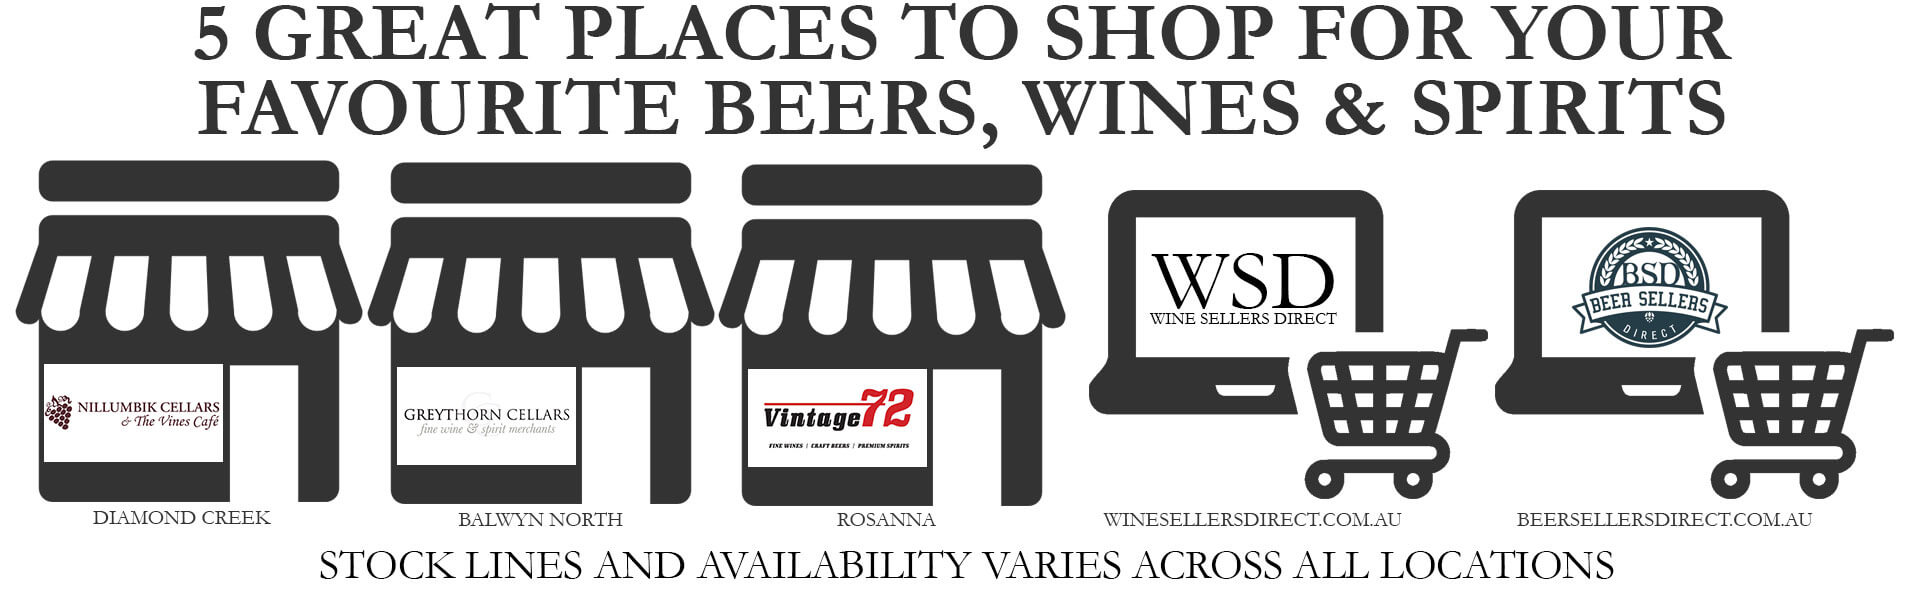 5 Great ways to purchase beer, wine & spirits - Nillumbik Cellars